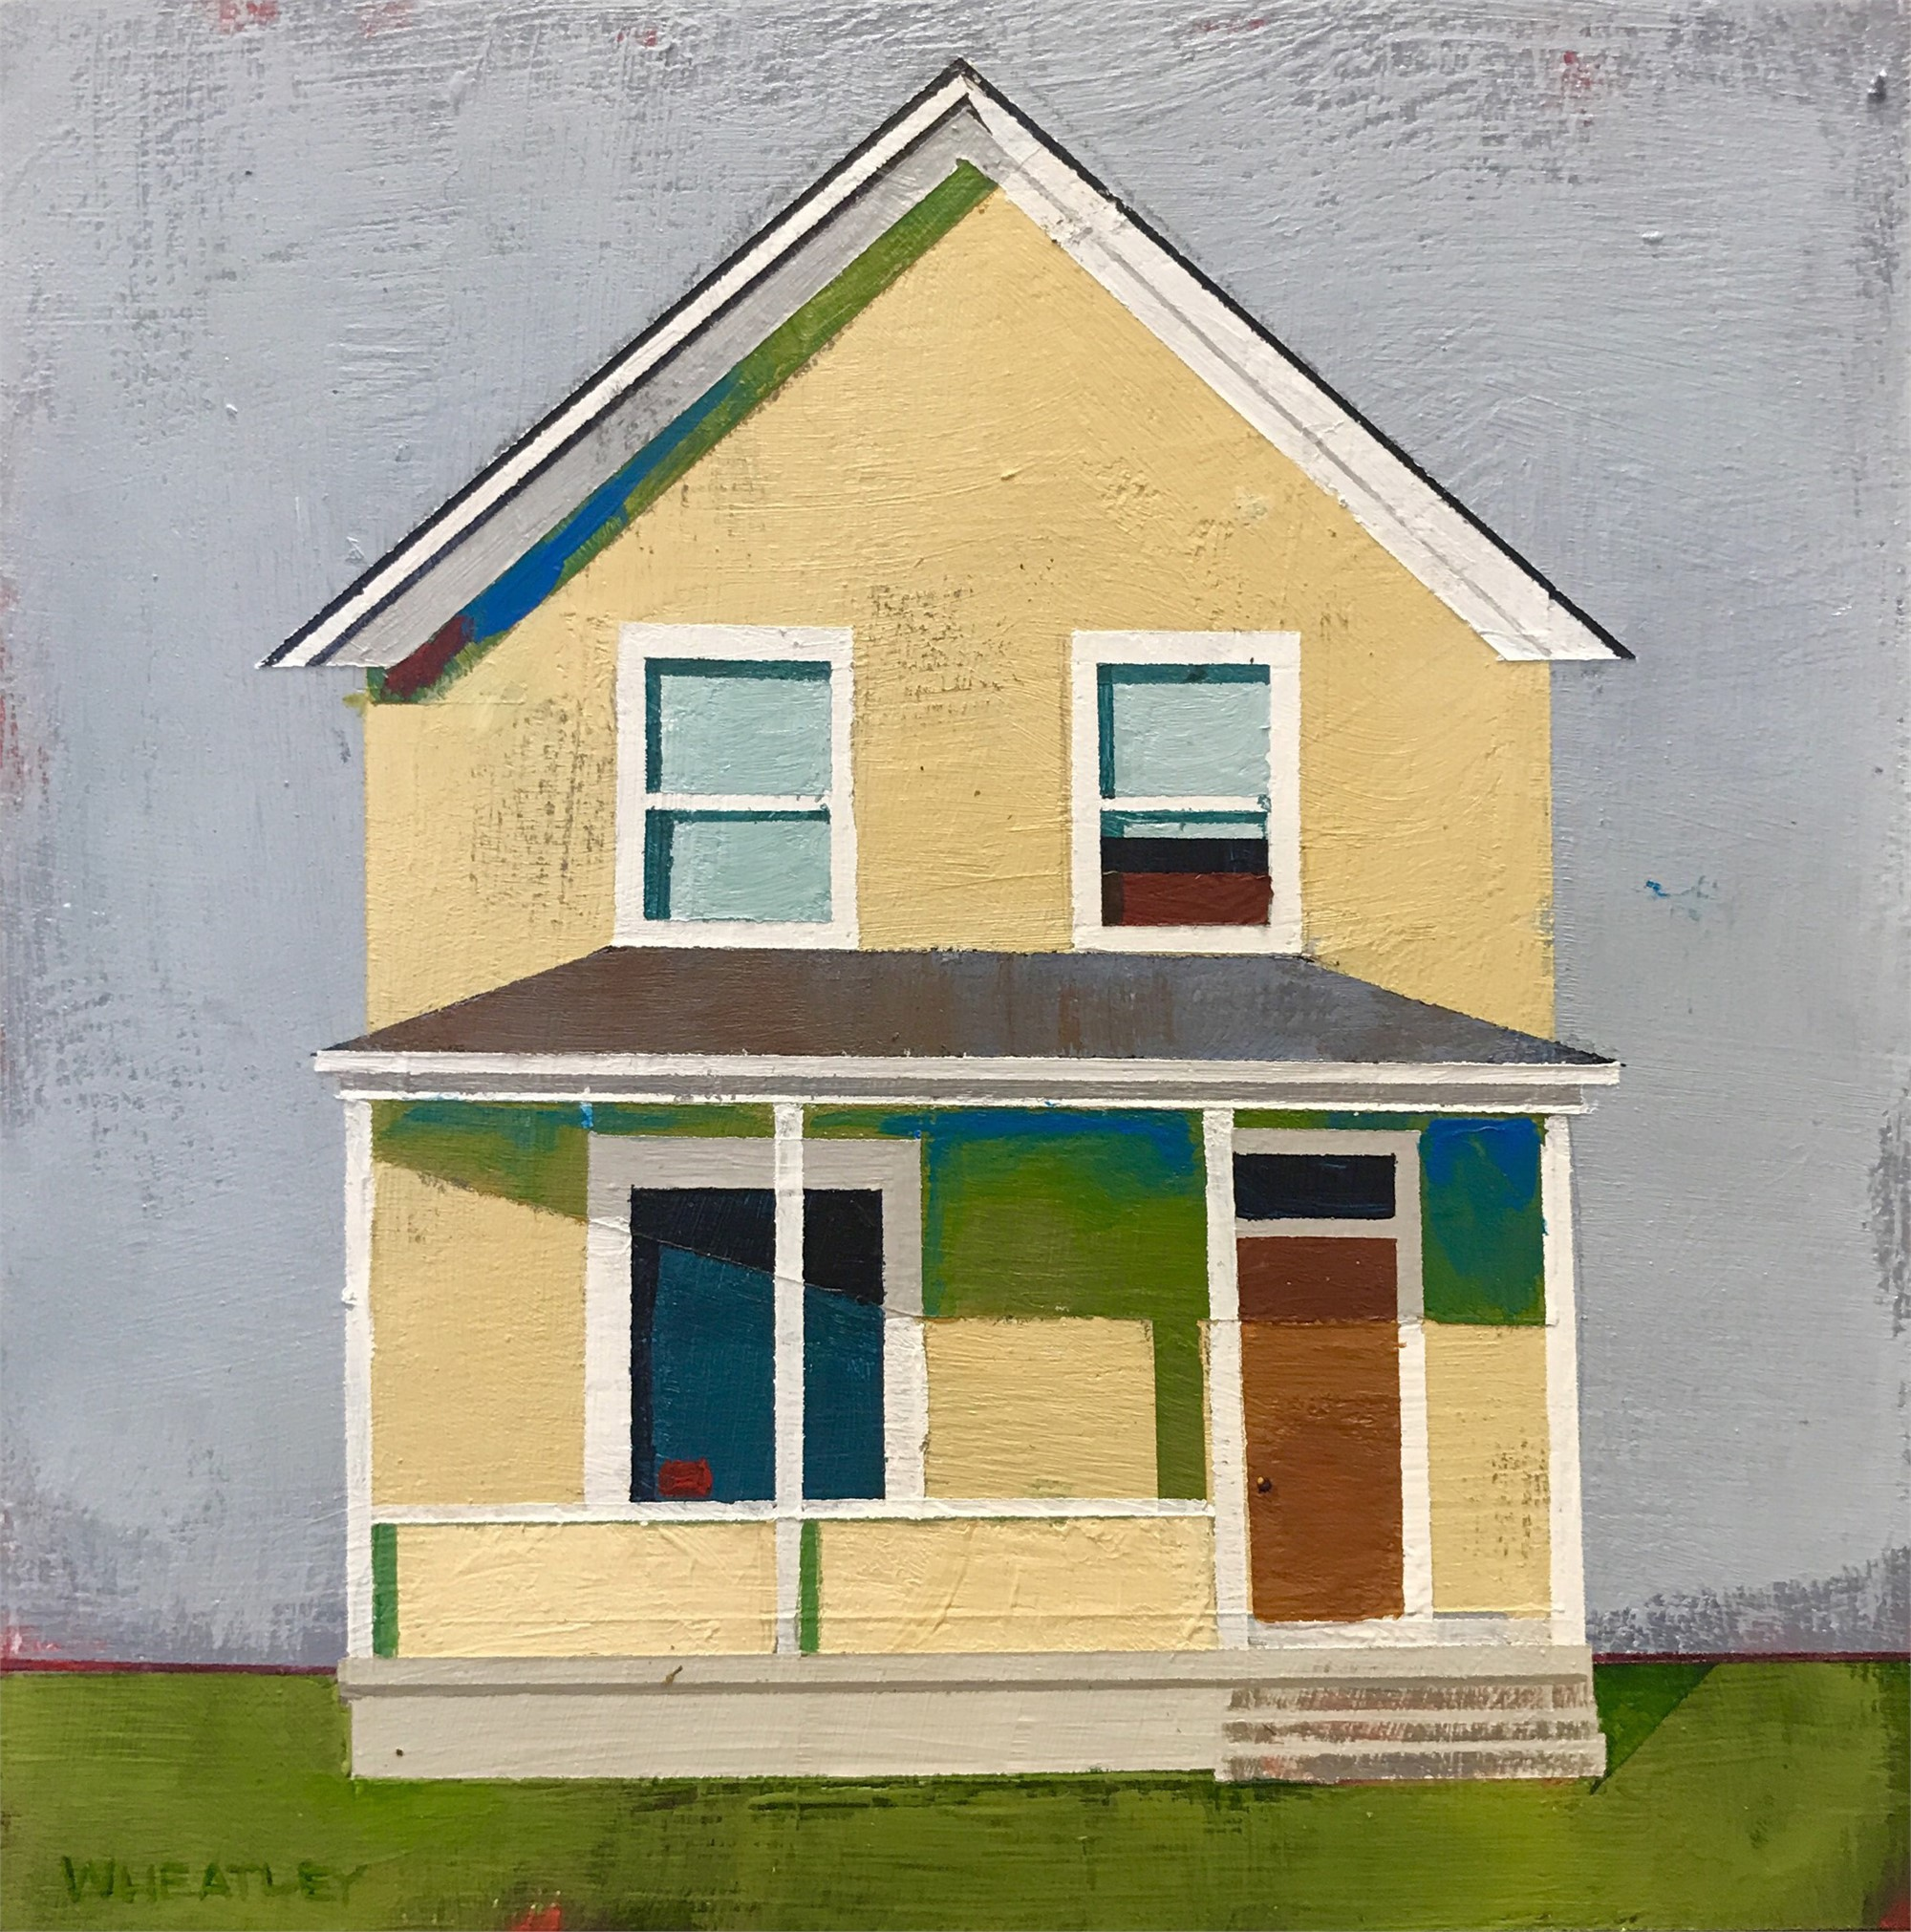 House on Almond Street by Justin Wheatley